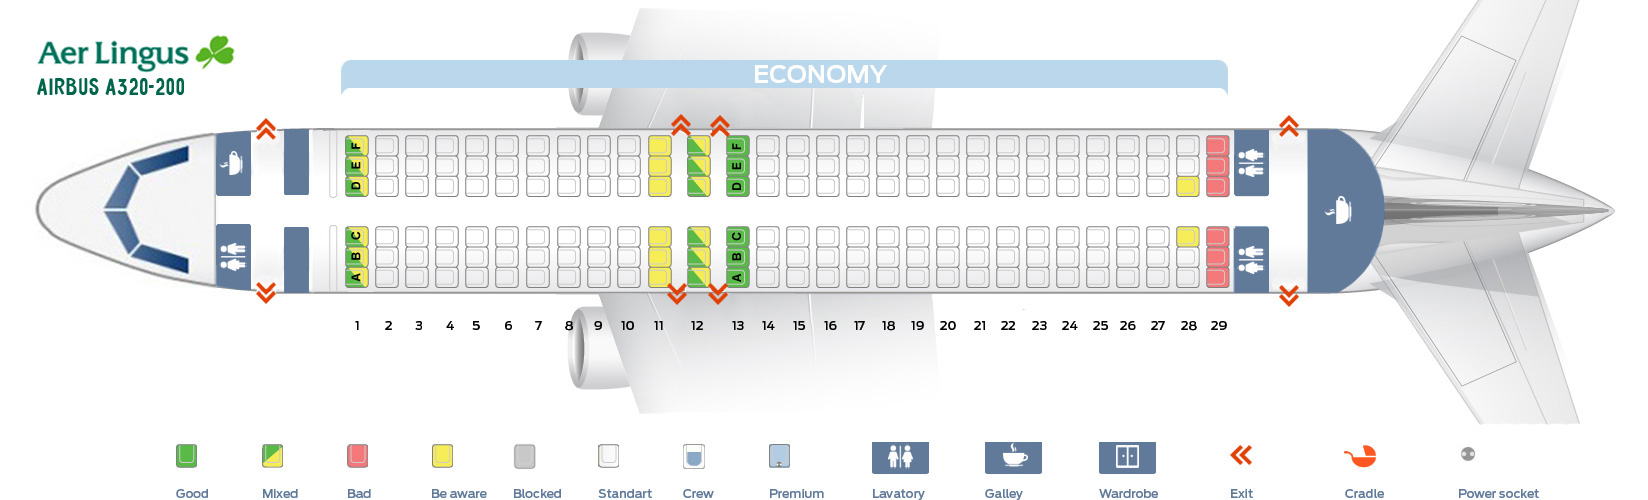 Seat map Airbus A320-200 Aer Lingus